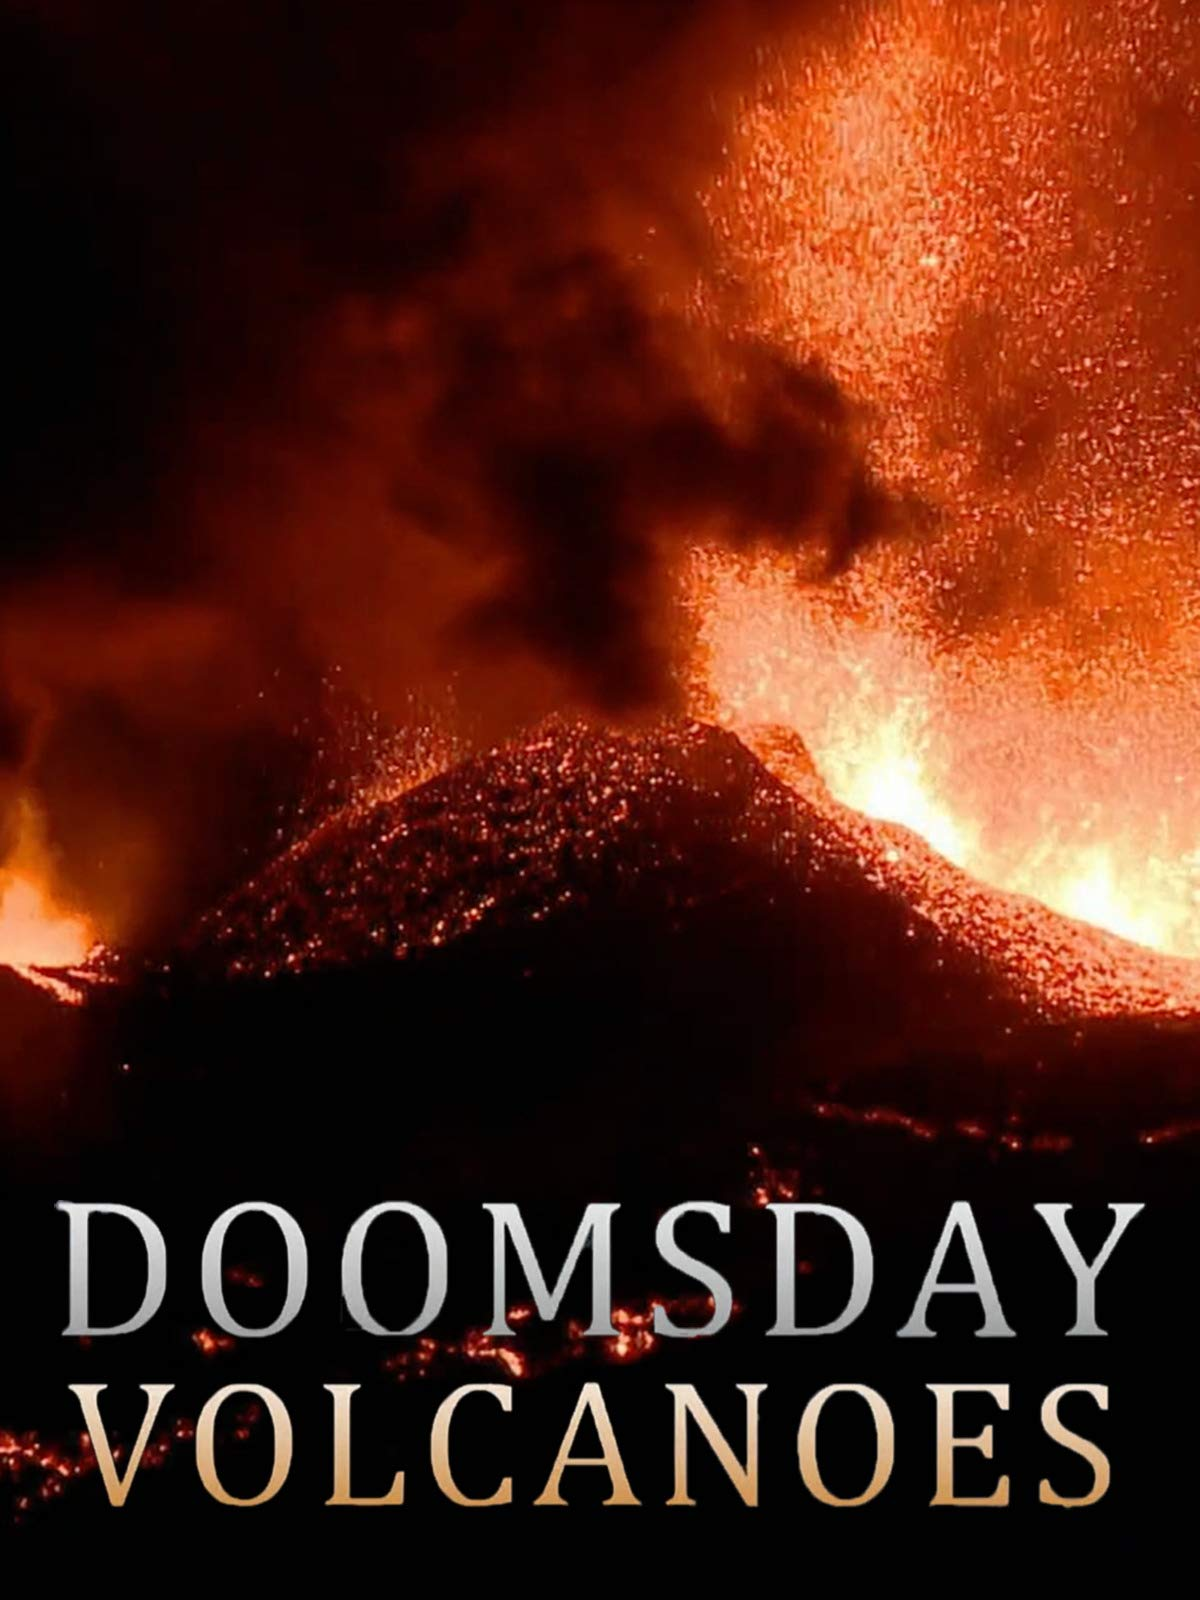 Doomsday Volcanoes